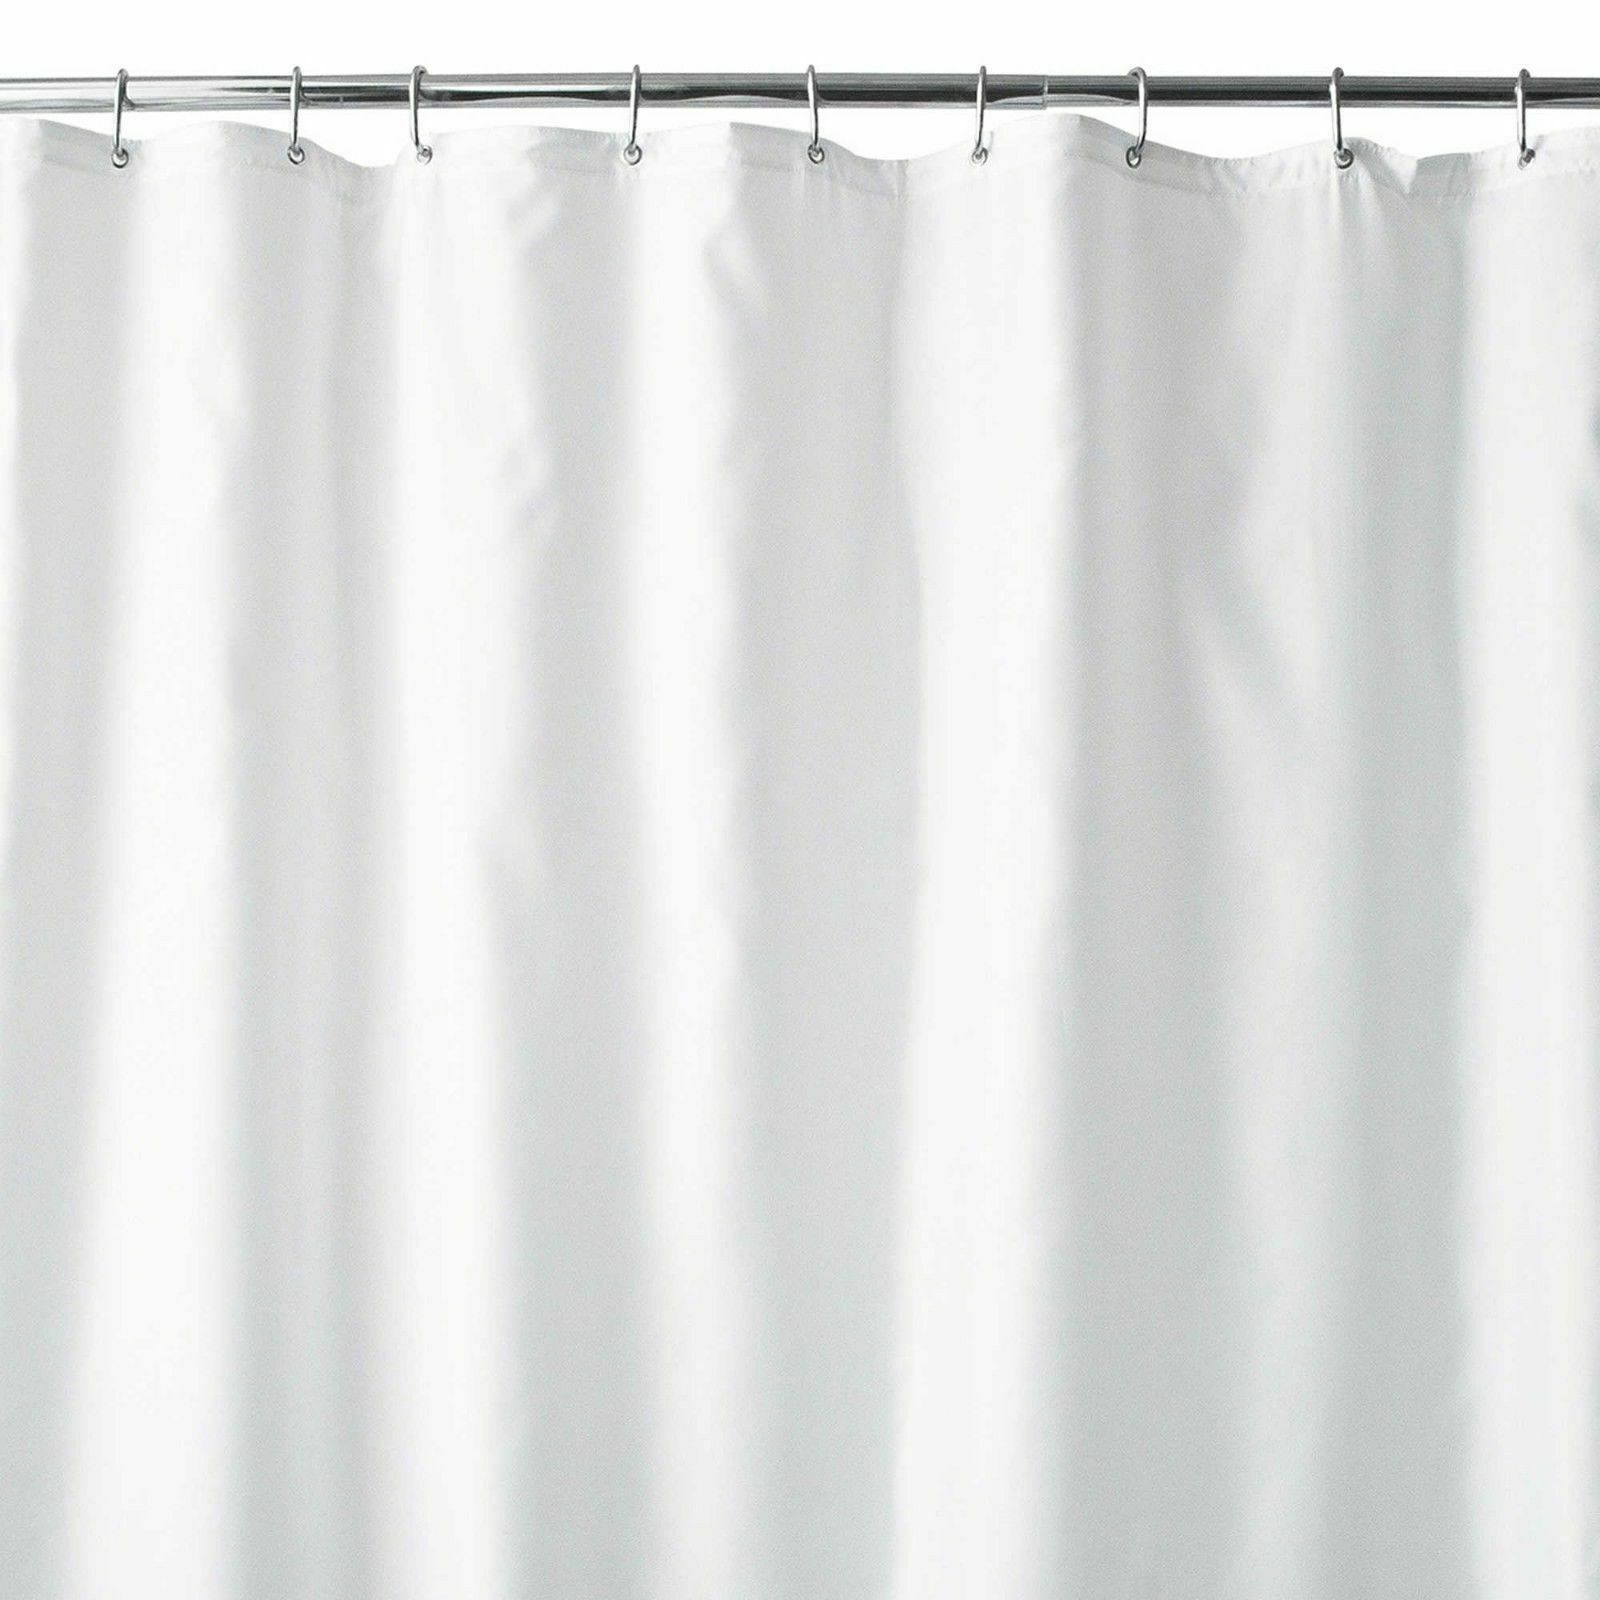 Details About New Wamsutta Luxury Fabric Shower Curtain Liner W Suction Cups 70 X72 In White